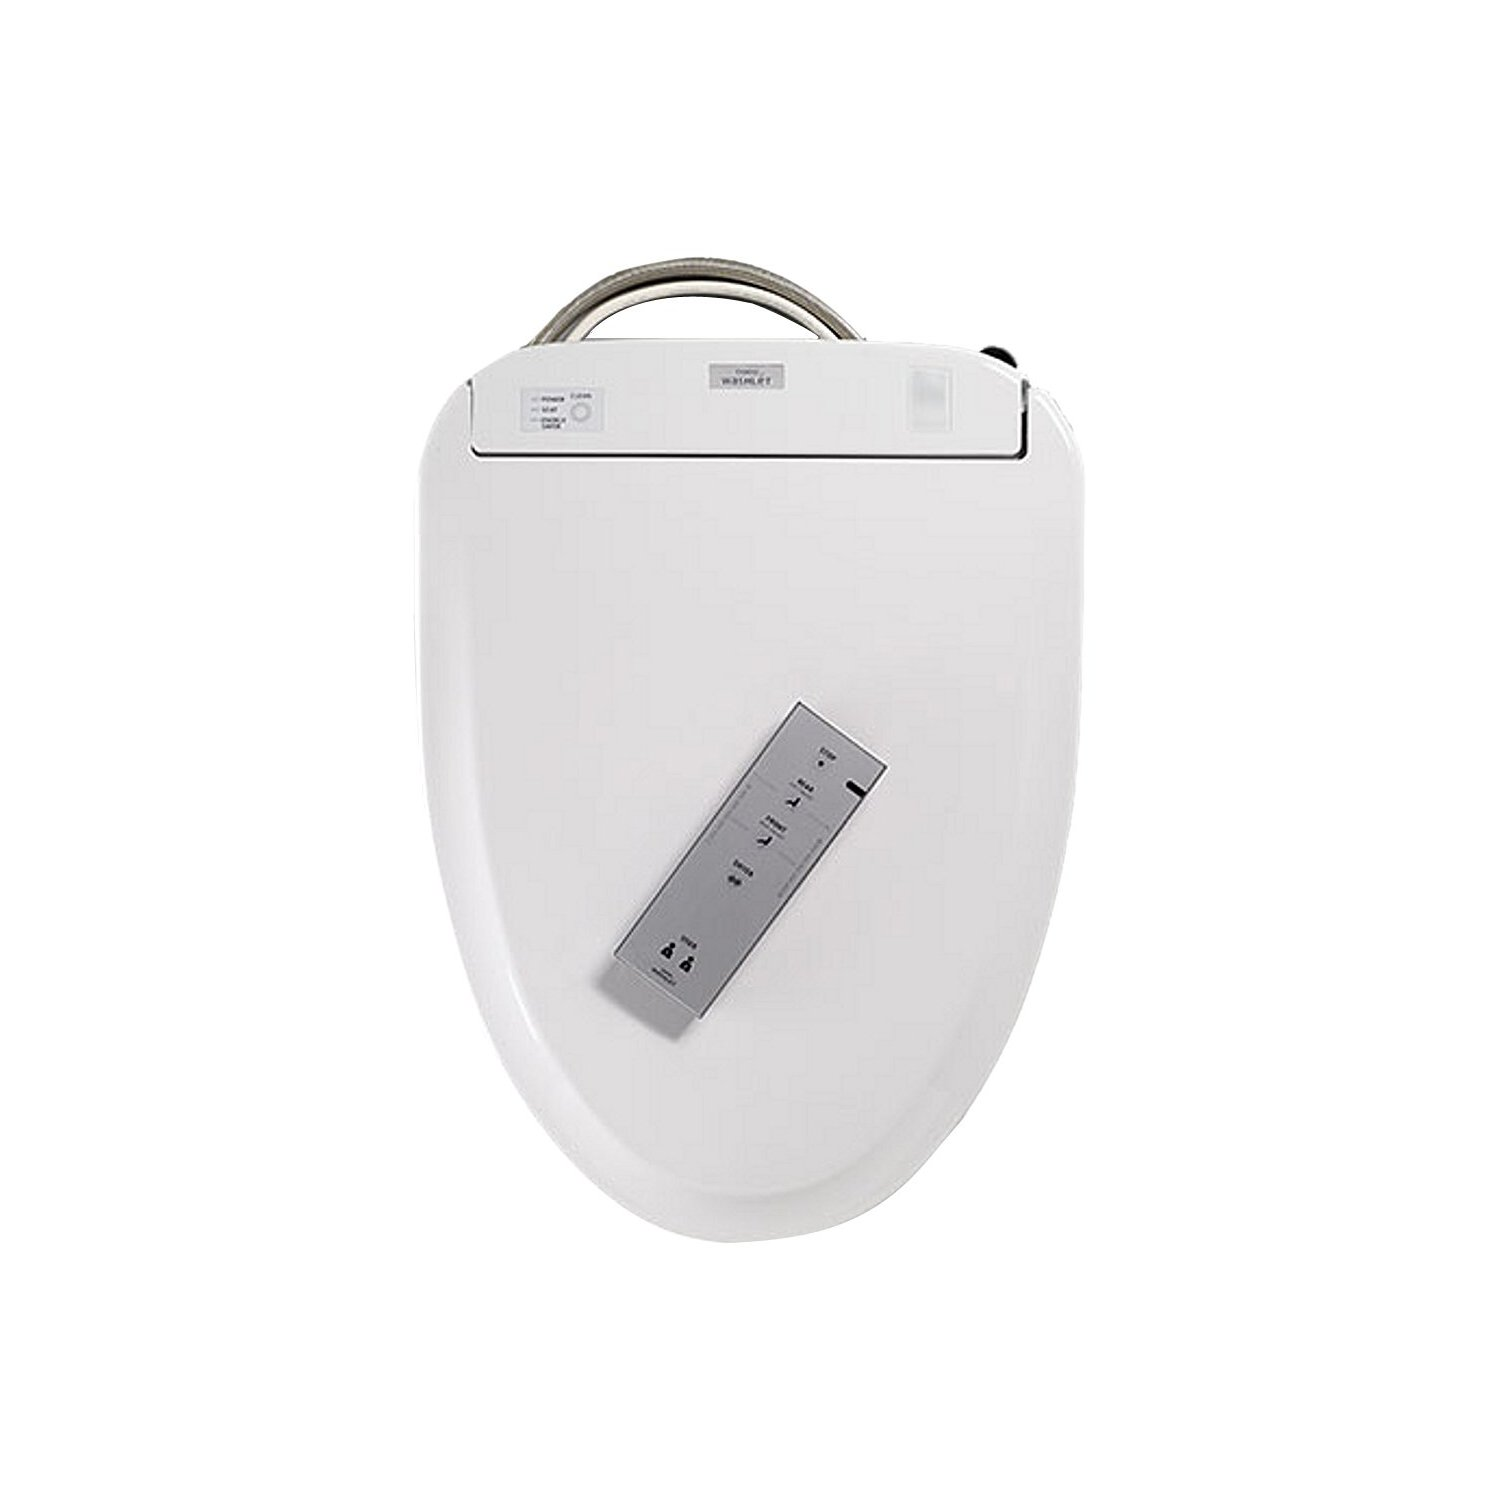 Toto SW573 01 Washlet S300e Review HouseAndGardenTech